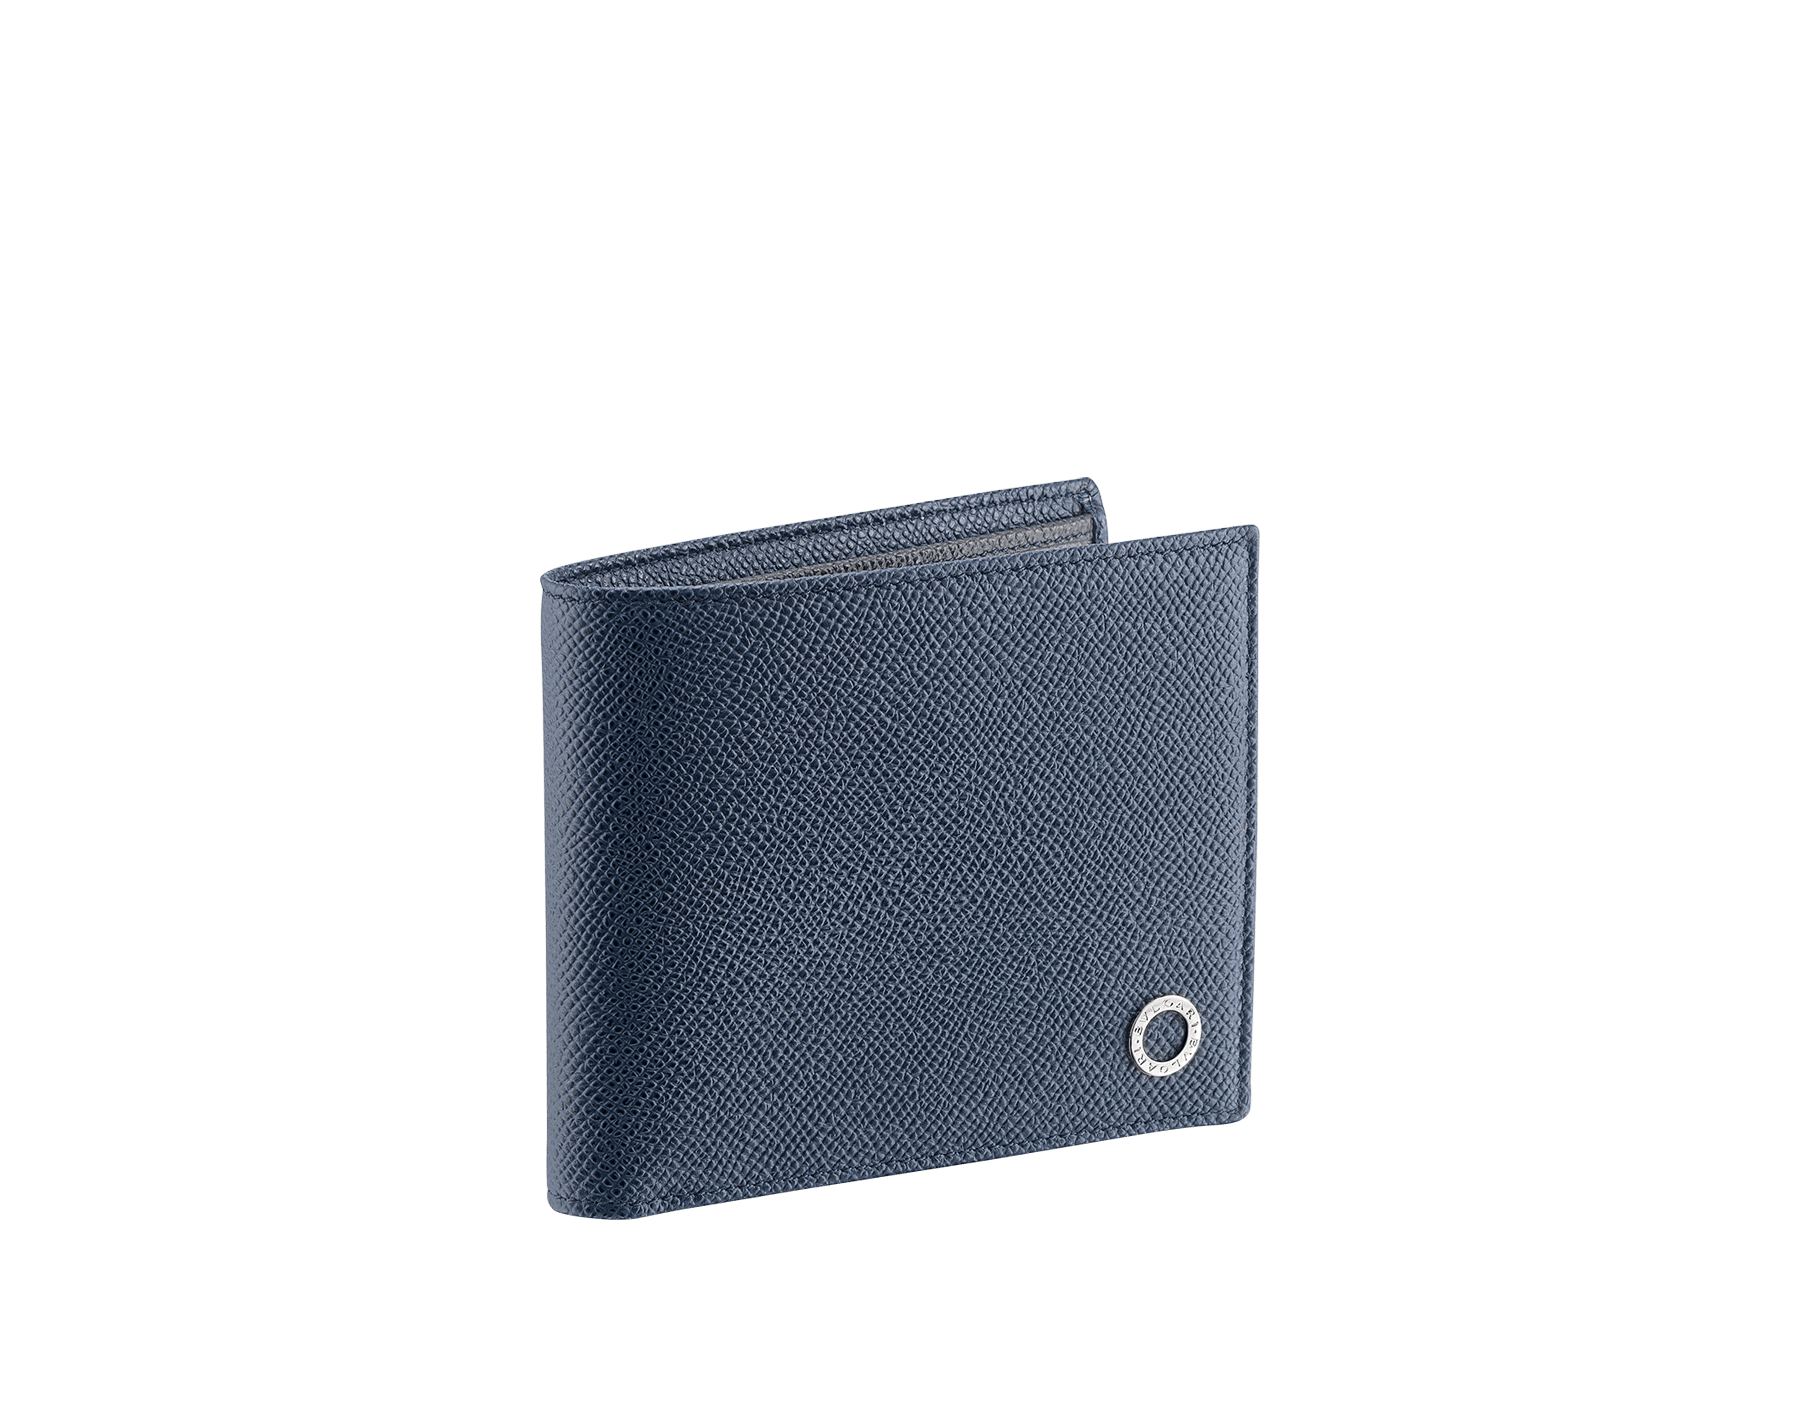 BVLGARI BVLGARI men's hipster wallet in denim sapphire and charcoal diamond grain calf leather. Iconic logo décor in palladium plated brass. 289109 image 1